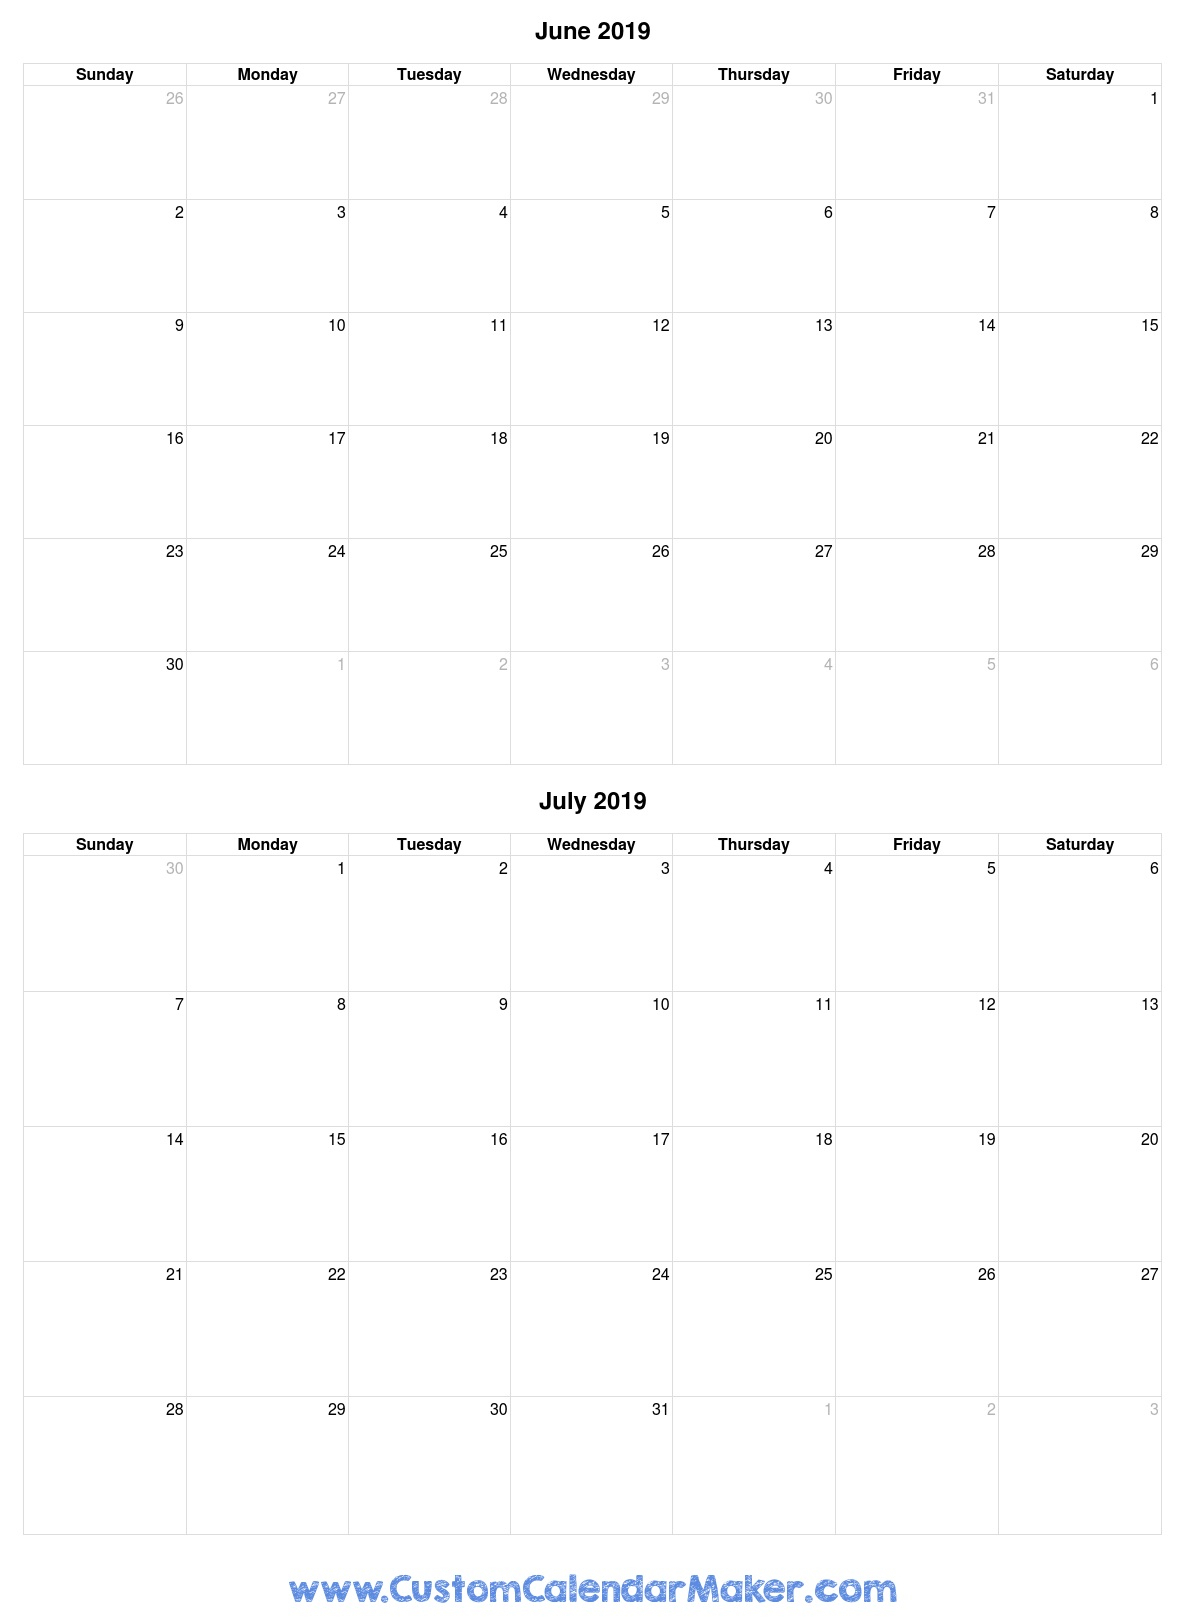 June And July 2019 Free Printable Calendar Template intended for Blank Calendar June July